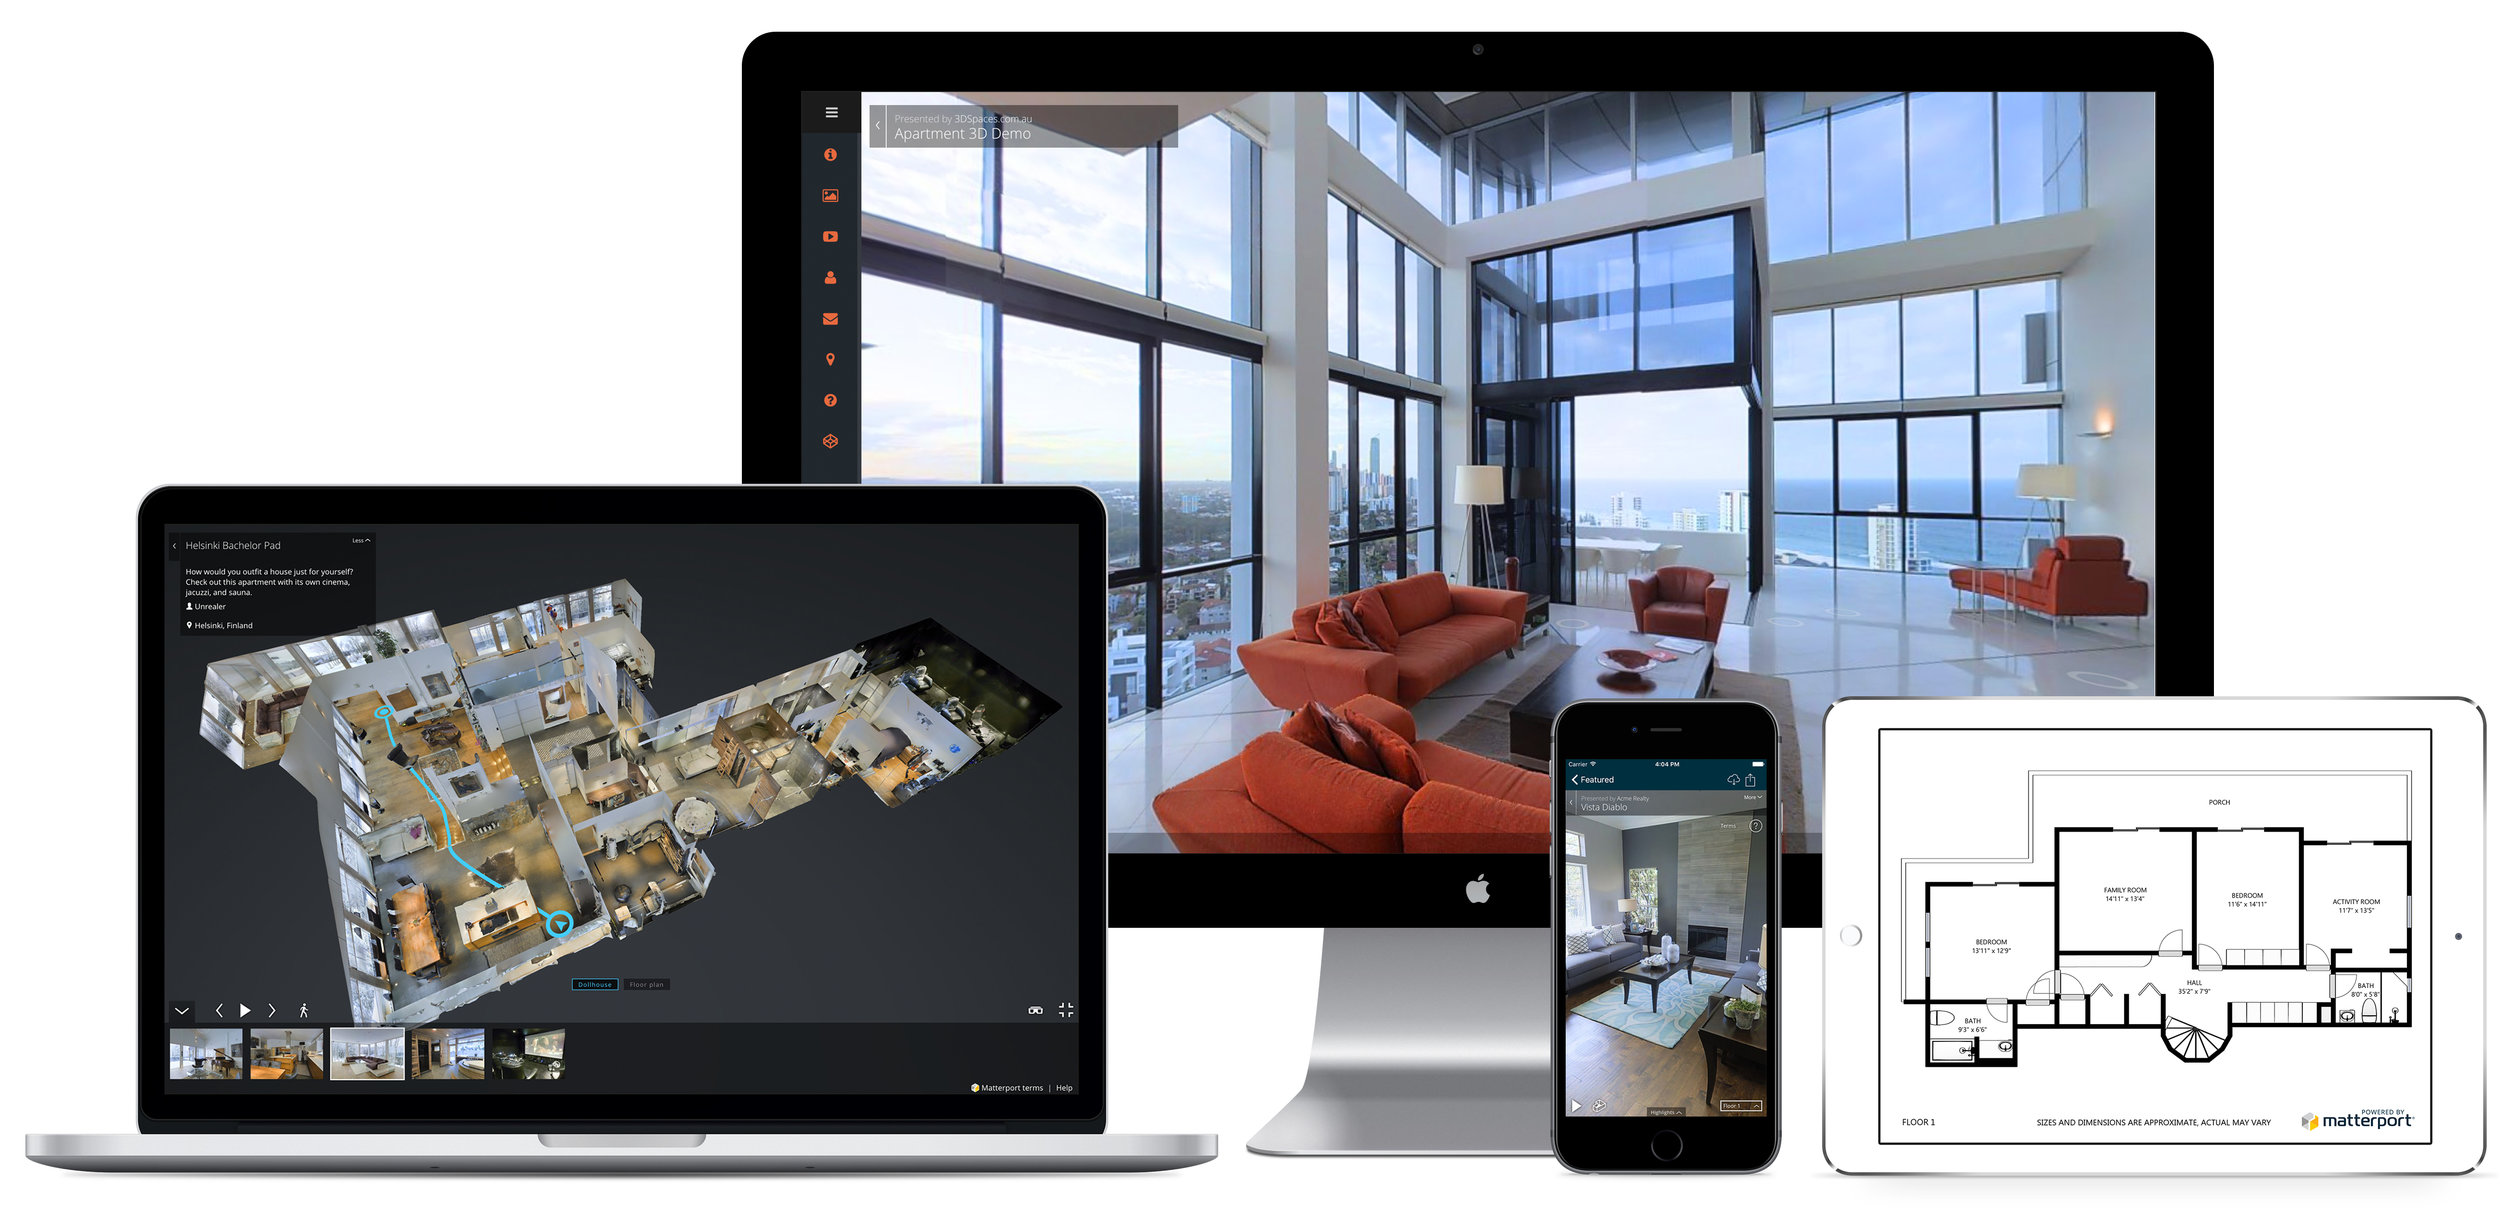 Matterport 3D Interactive Tour and Full Suite - Keep buyers looking at your listing longer to have them remember your home easier. Stand out amongst thousands of listing photos with a personalized webpage for your home with a full suite of visuals such as dollhouse view, floor plans with measurements, and 3D interactive tour with VR and 4k capabilities. Click the image below for a sample interactive tour! All imaging is completed only by professionals - Experts hired and overseen by your listing agent.